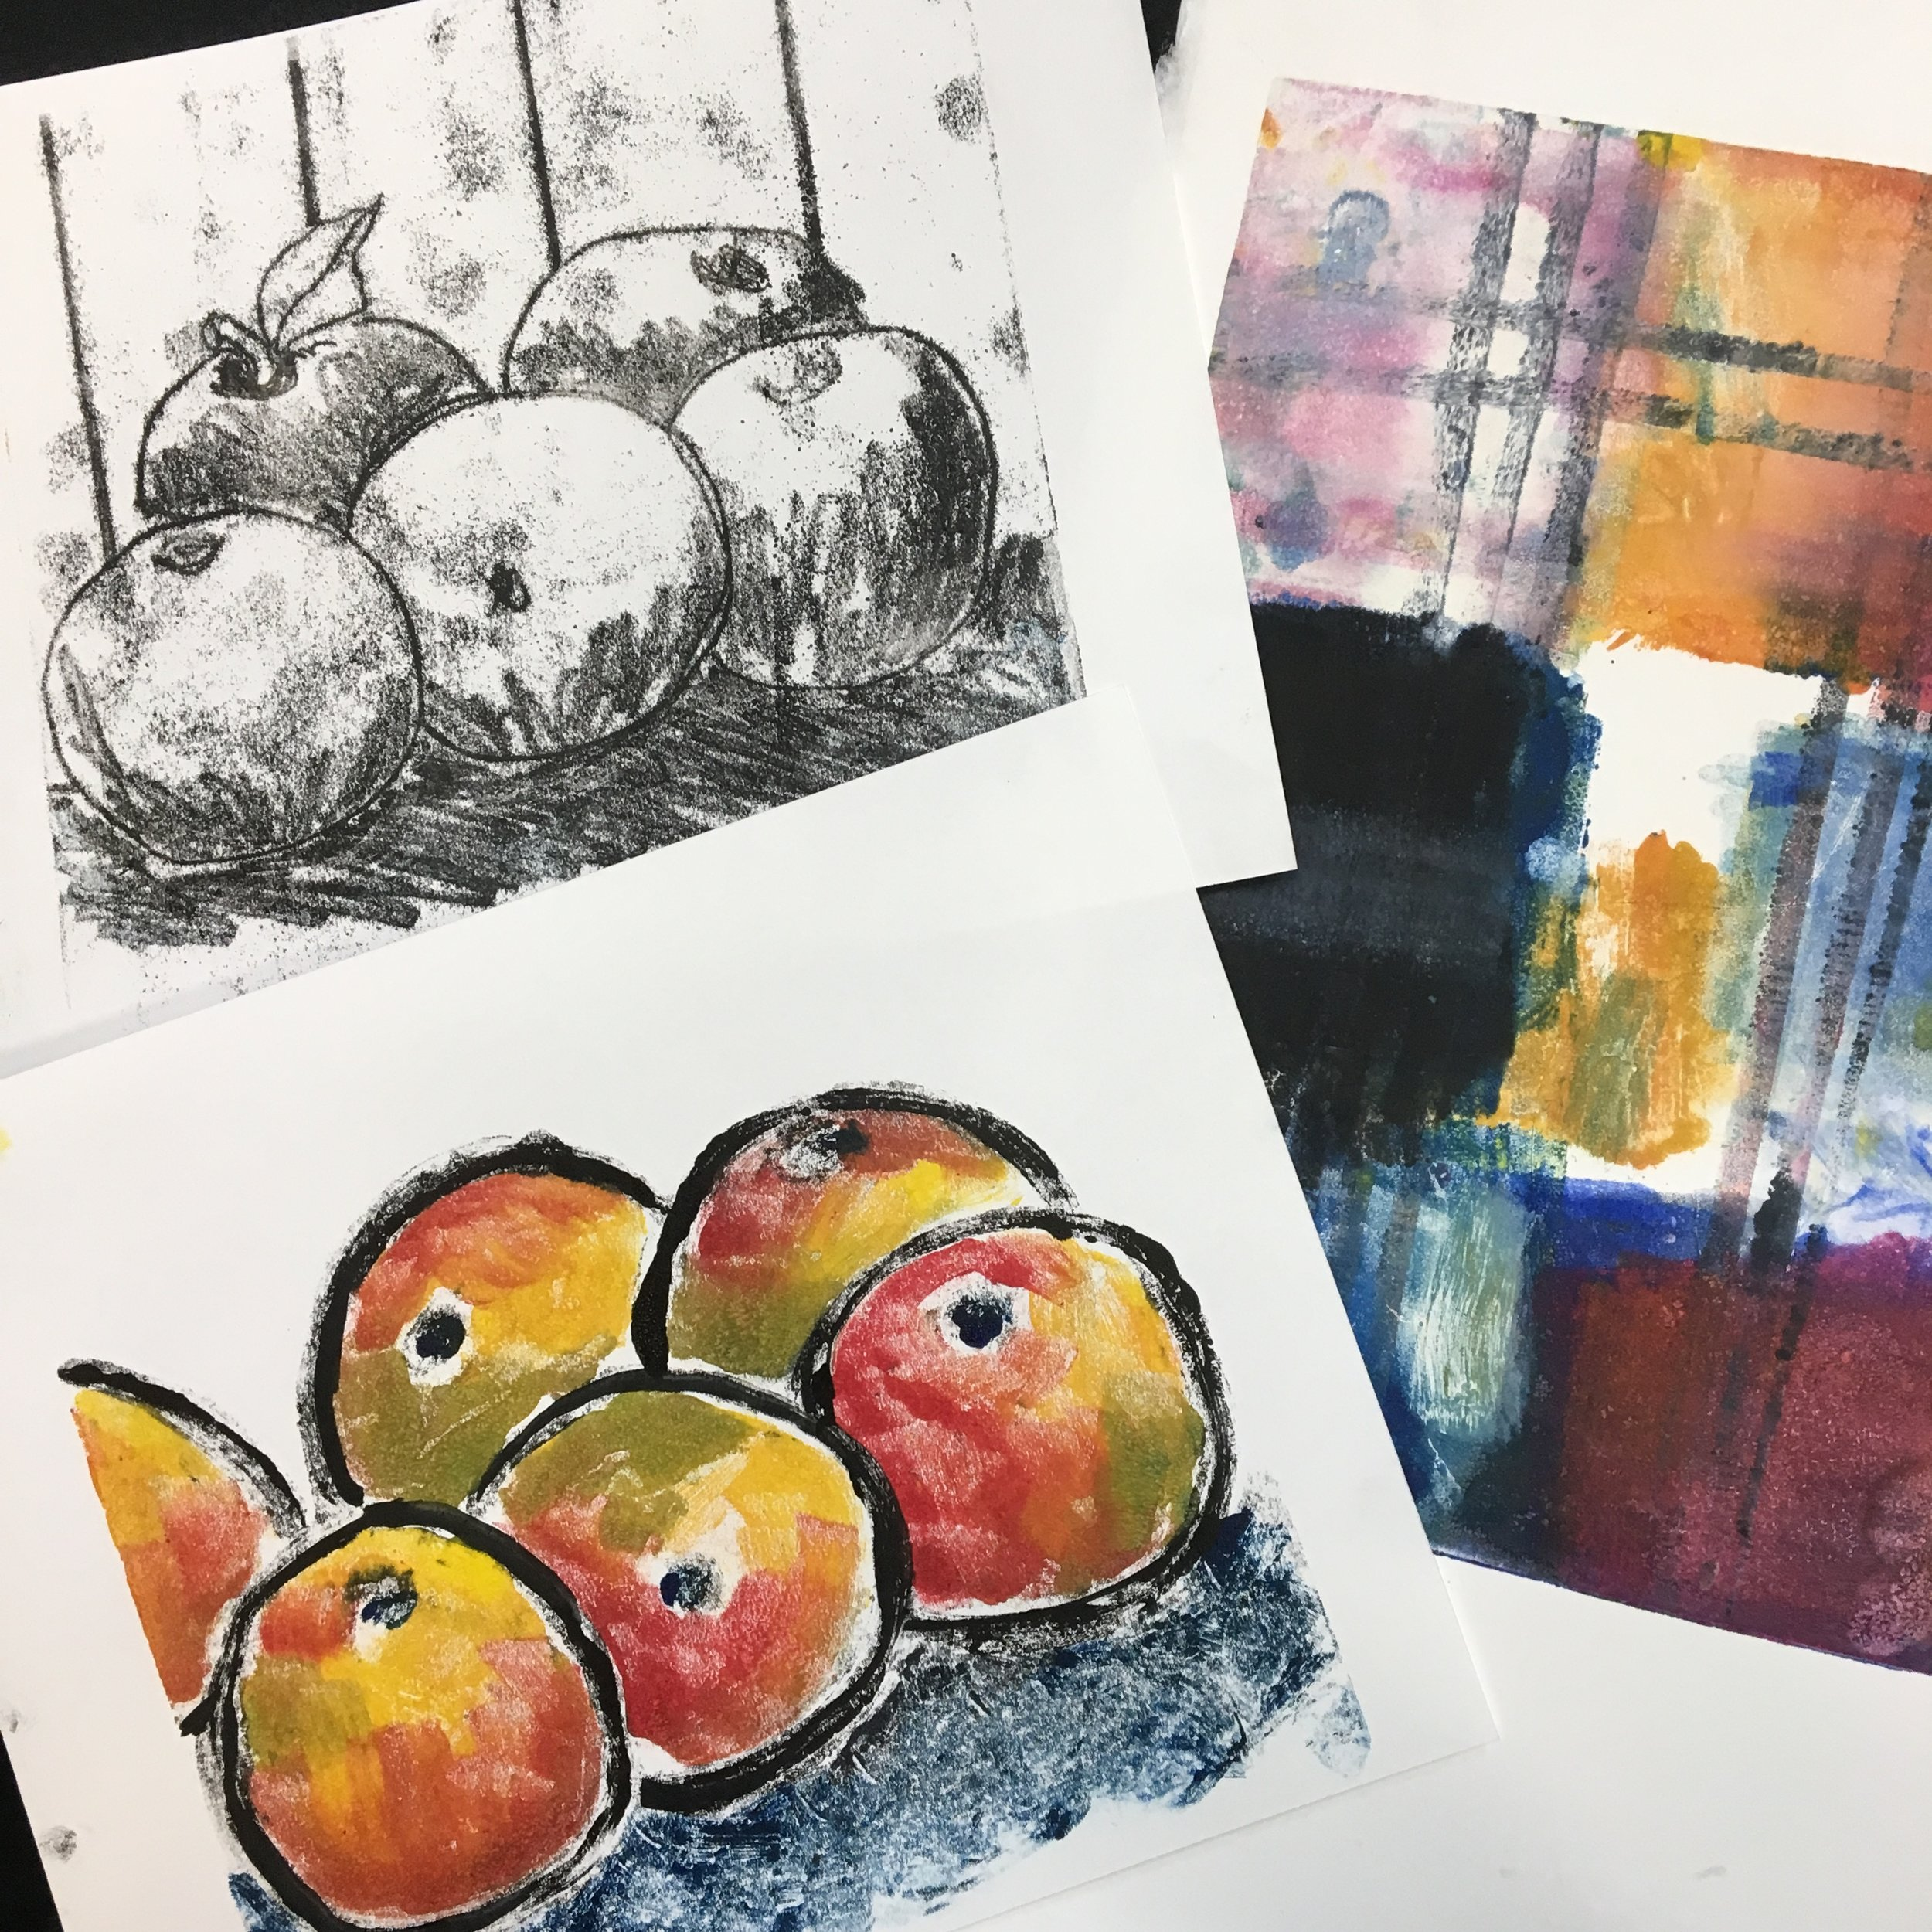 monoprint samples by Eileen Blodgett